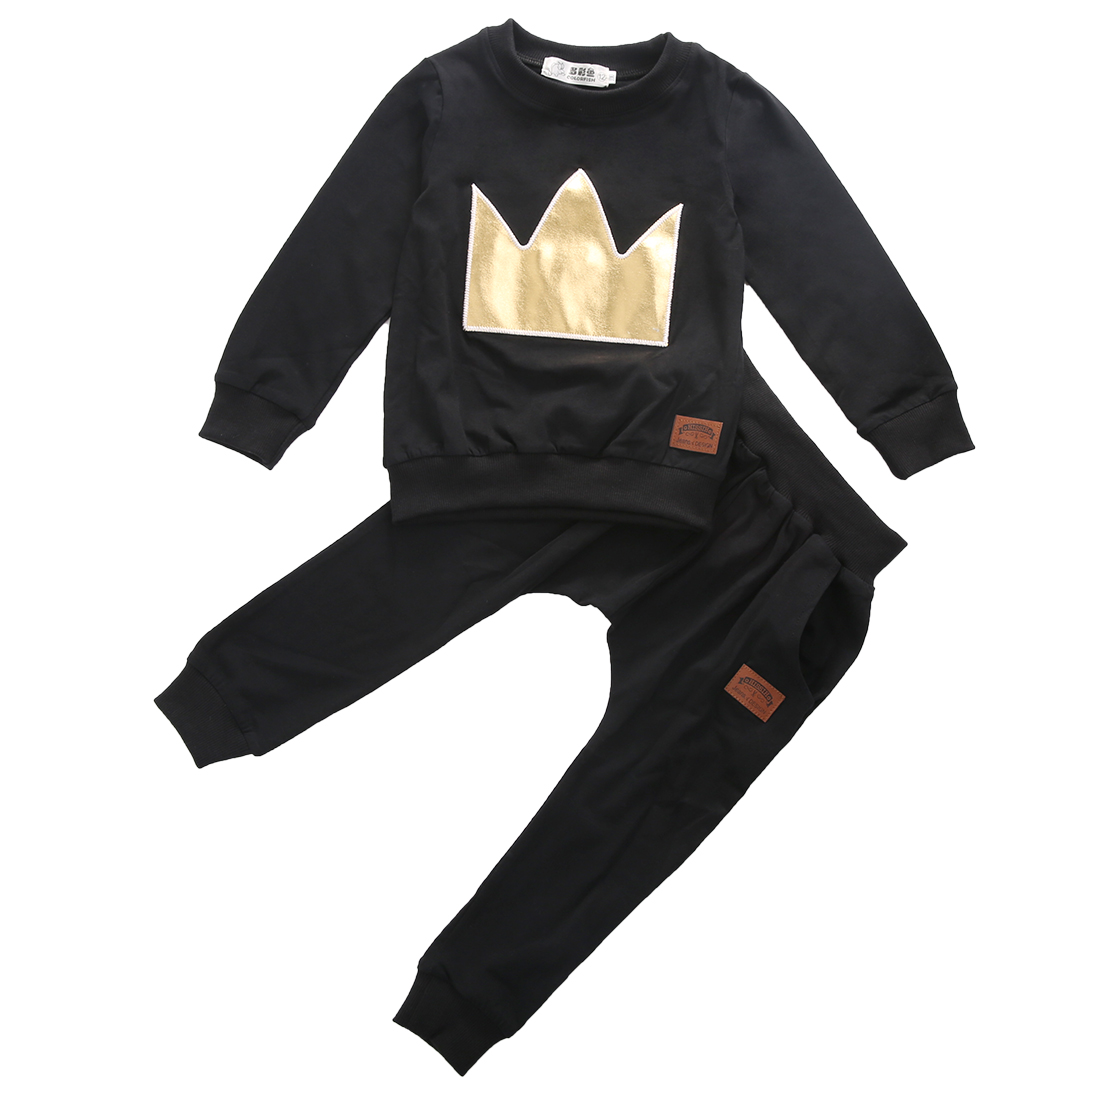 Toddler Infant Newborn Baby Boy Girls Unisex Crown Tops T shirt Leggings 2PCS Outfits Set Tracksuit Clothes baby boy winter warm clothes set newborn toddler infant kids baby boy autumn clothes t shirt tops pants outfits set 2pcs